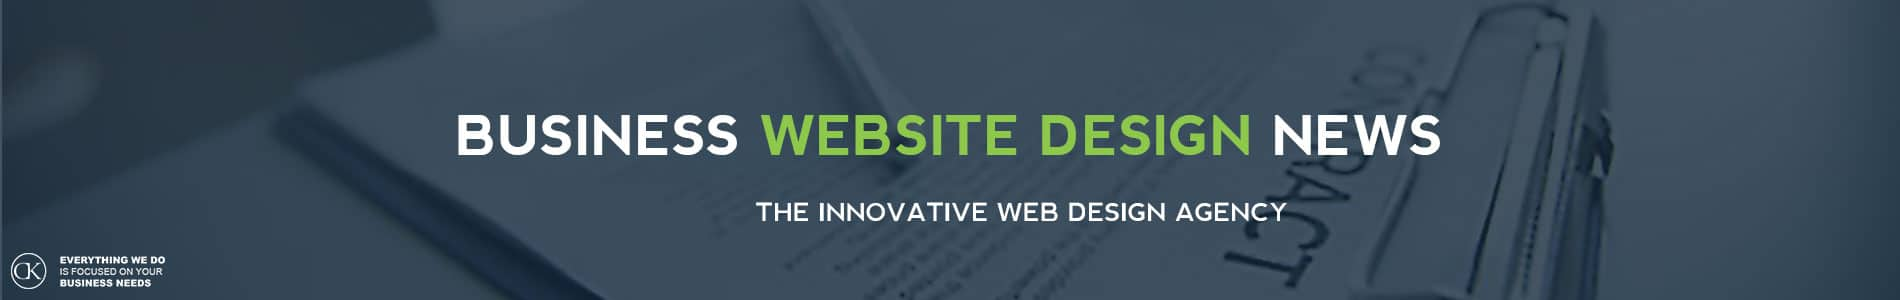 BUSINESS WEBSITE DESIGN NEWS